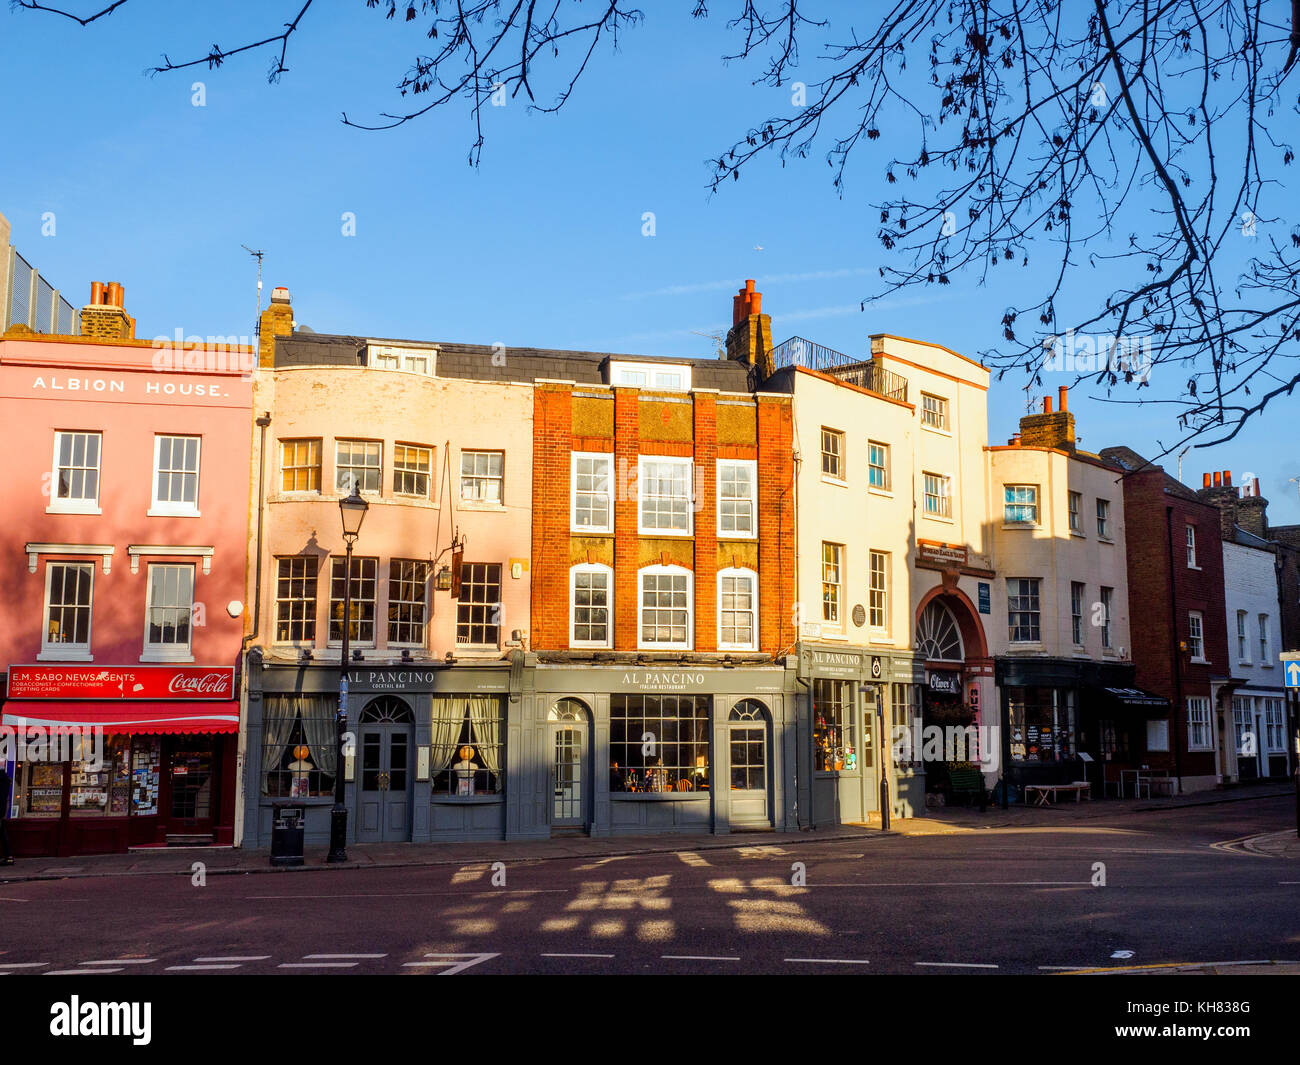 Stockwell street in Greenwich - London, England - Stock Image